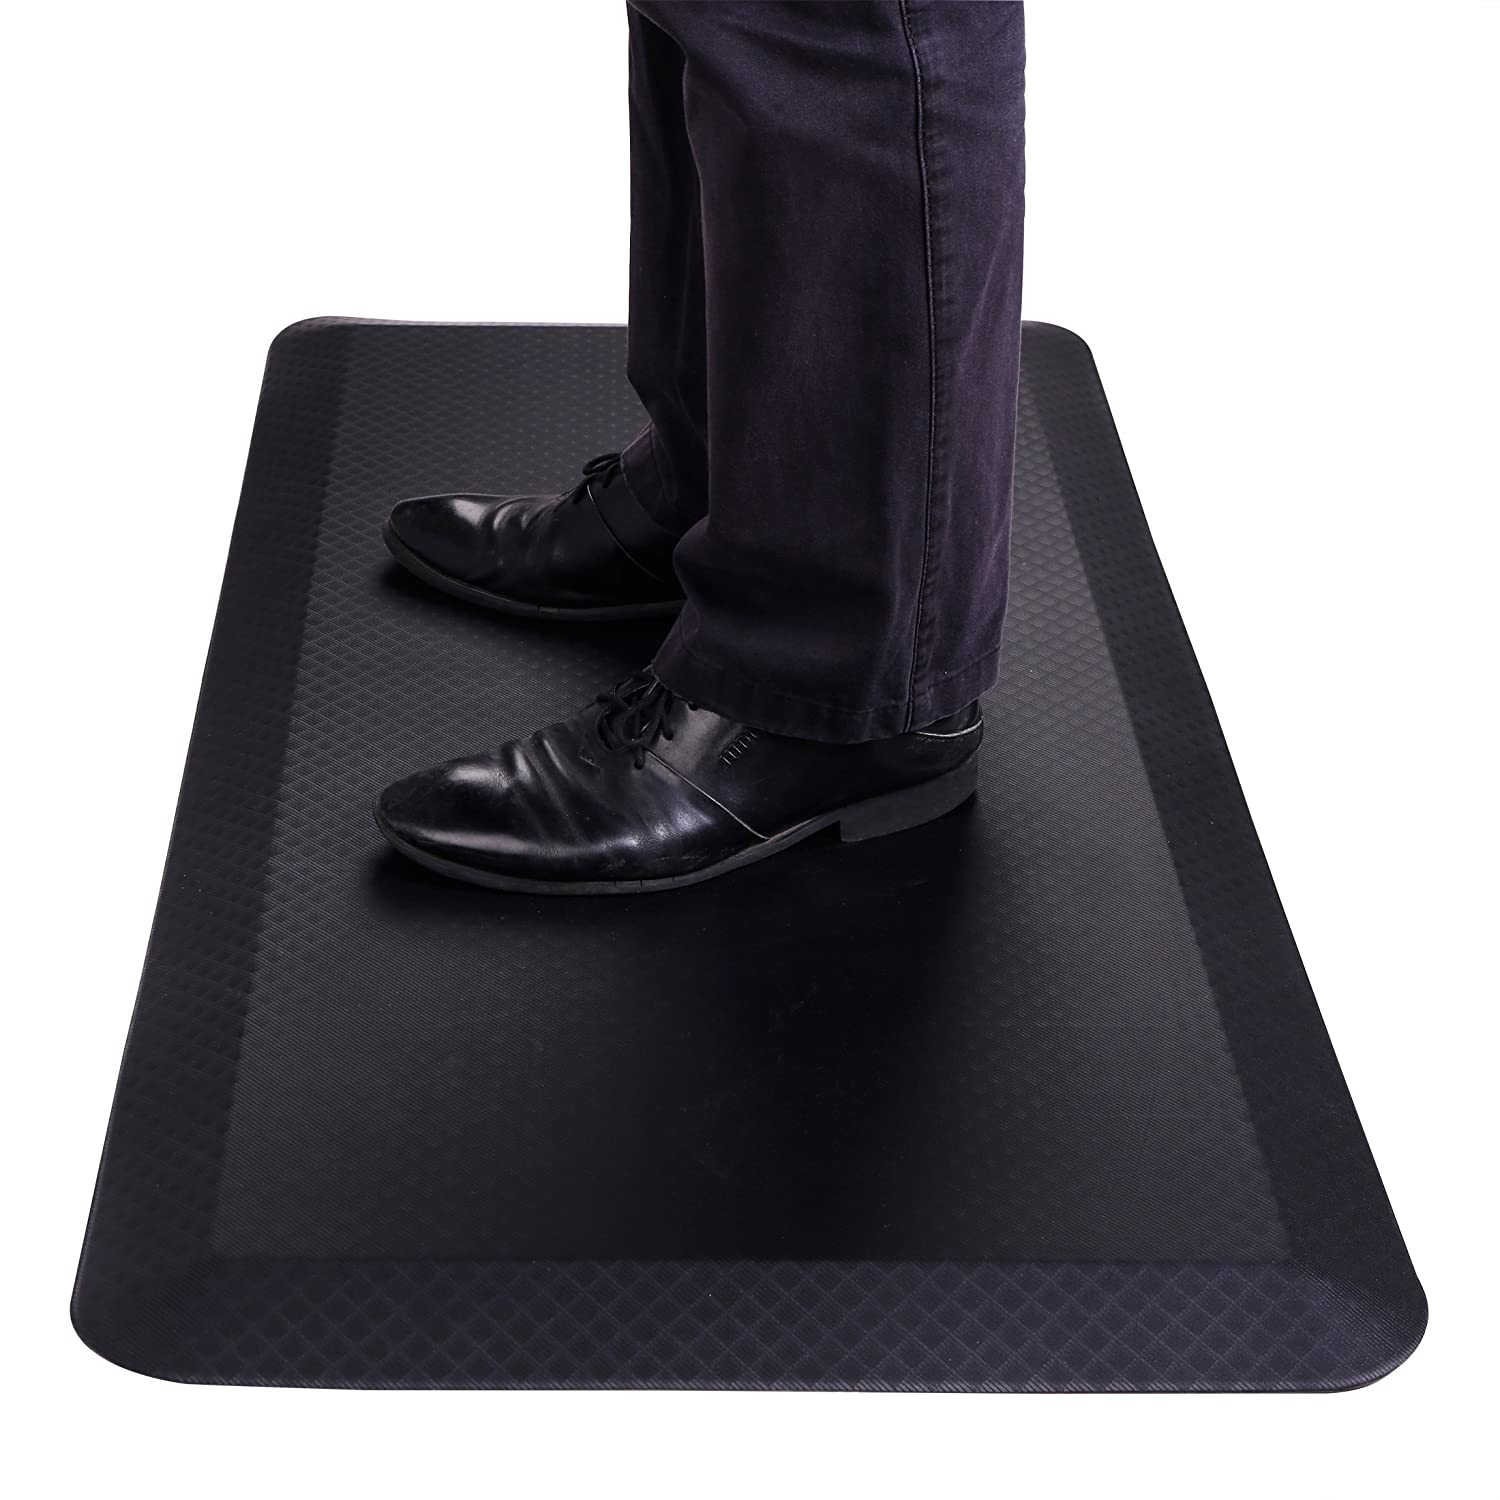 "FlexiSpot Standing Desk Mat 20 in x 39 in Non-Slip Comfort Kitchen Floor Mat 3/4"" Anti-Fatigue Black Comfort Kitchen Floor Mats for Standup Desks Kitchens Shipped Flat Midnight Black"